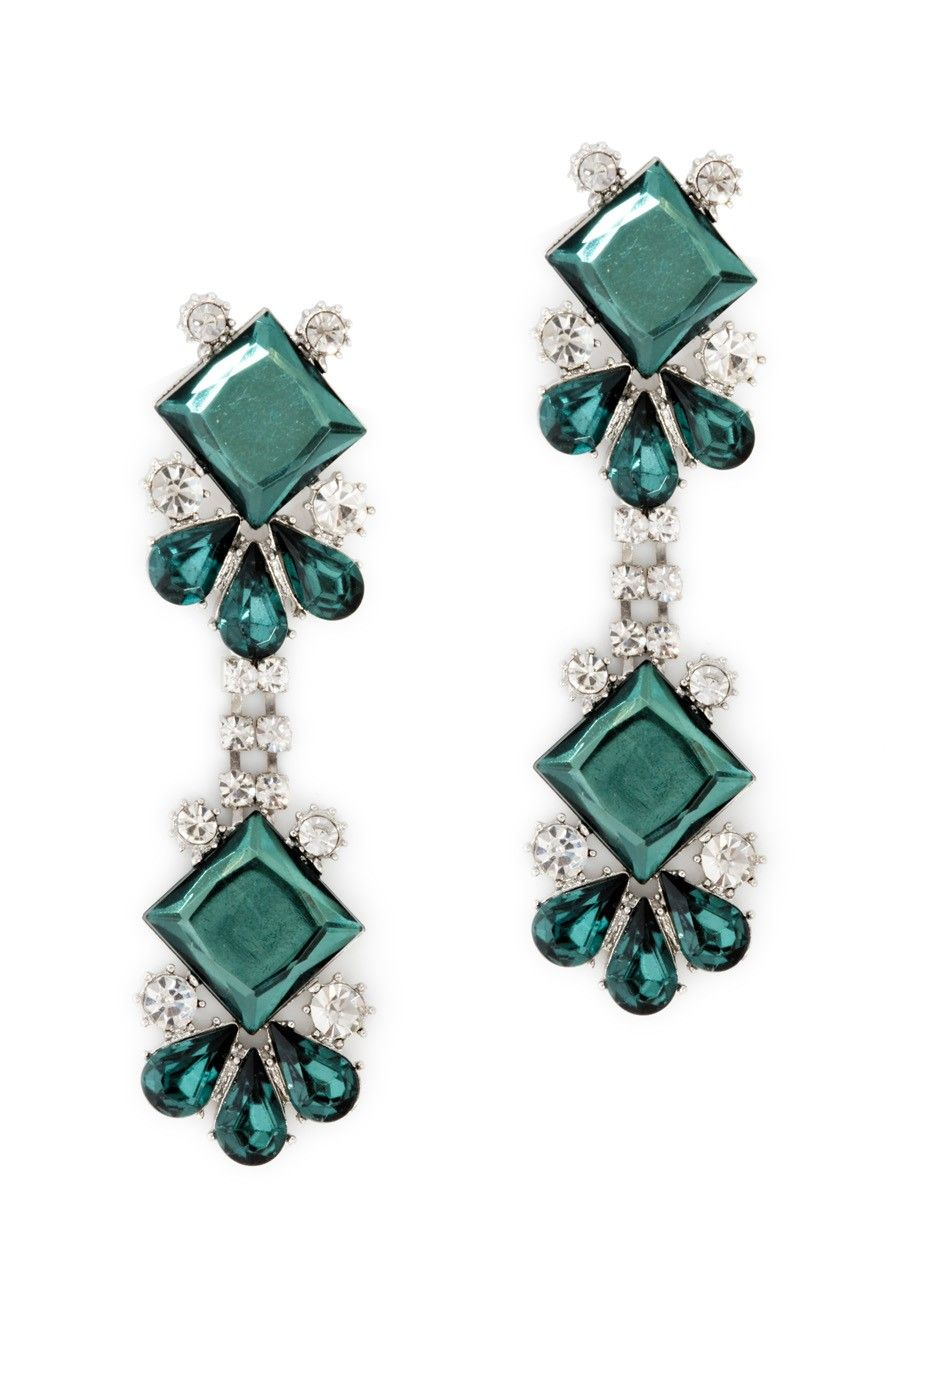 These vintage-esque earrings mix elegance and drama, an unforgettable design, gorgeous color, and a whole lotta sparkle. Post backing and anchoring emerald stone drip down into the hanging, mirror-image bottom. Instant fashionista flair.